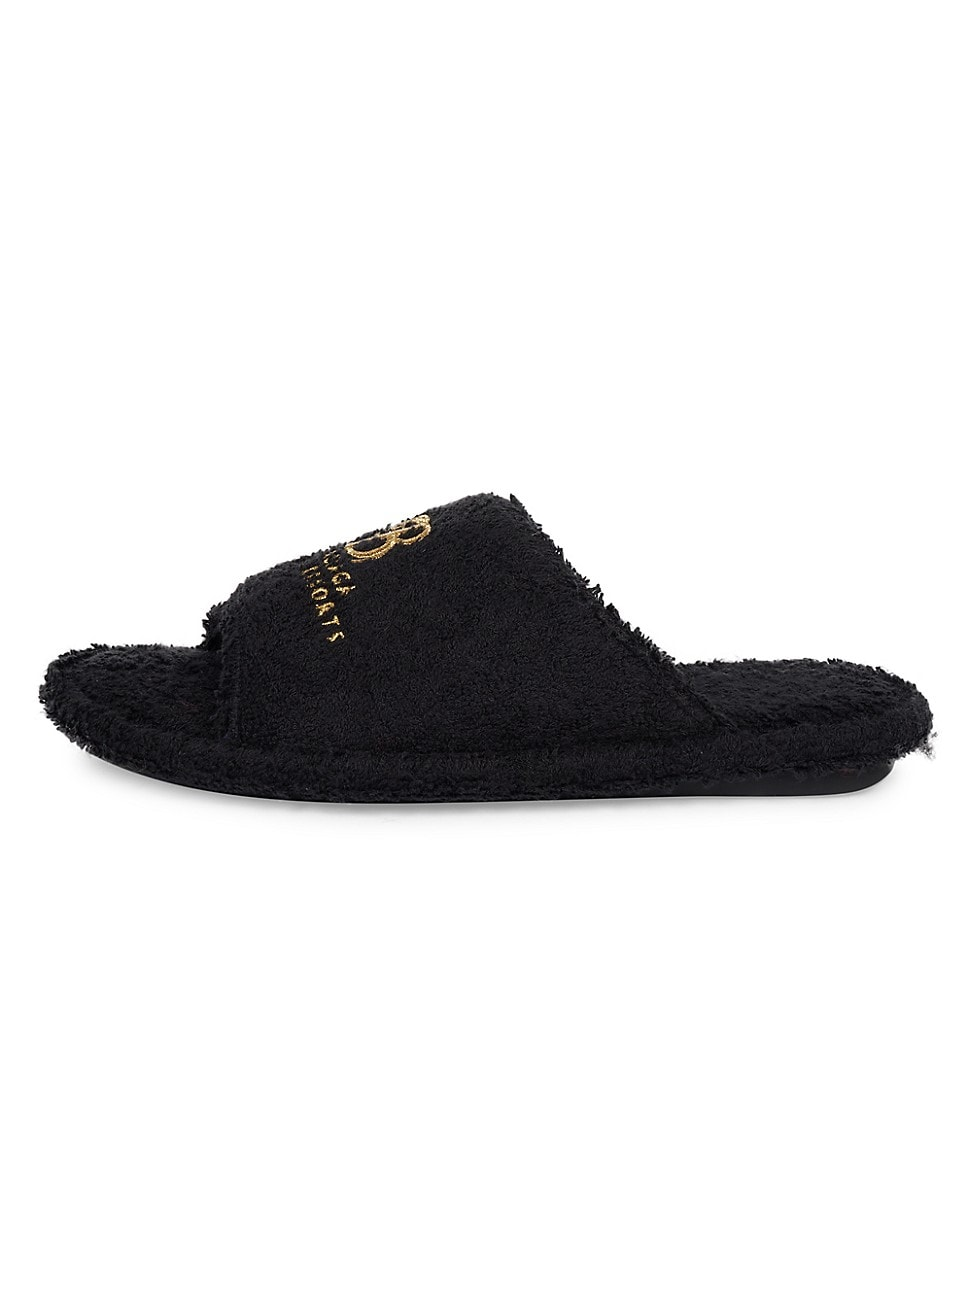 Balenciaga WOMEN'S HOME TERRY SLIPPERS